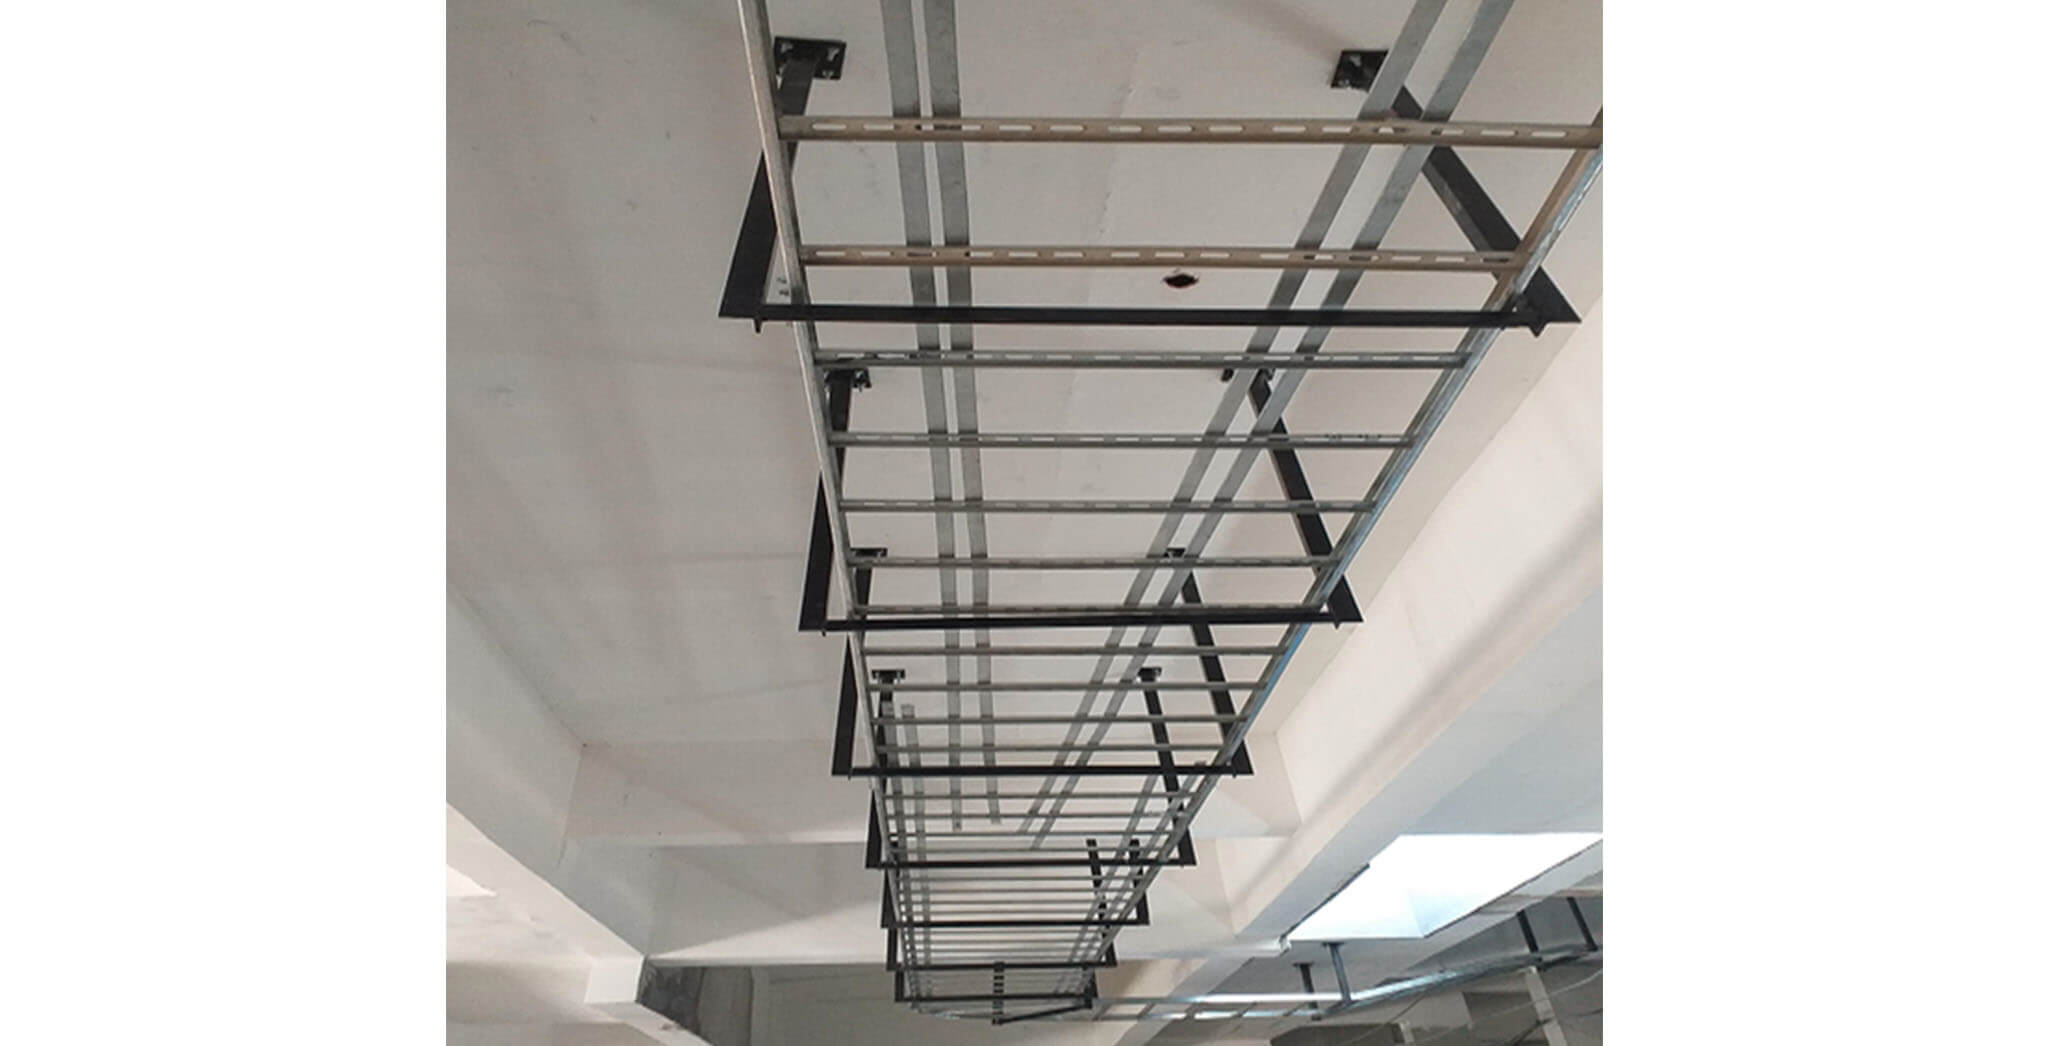 Jun 2021 - Blocks J, K, L, M, N, P, Q, R, S, A, E, F, G & H: Basement electrical cable tray in progress